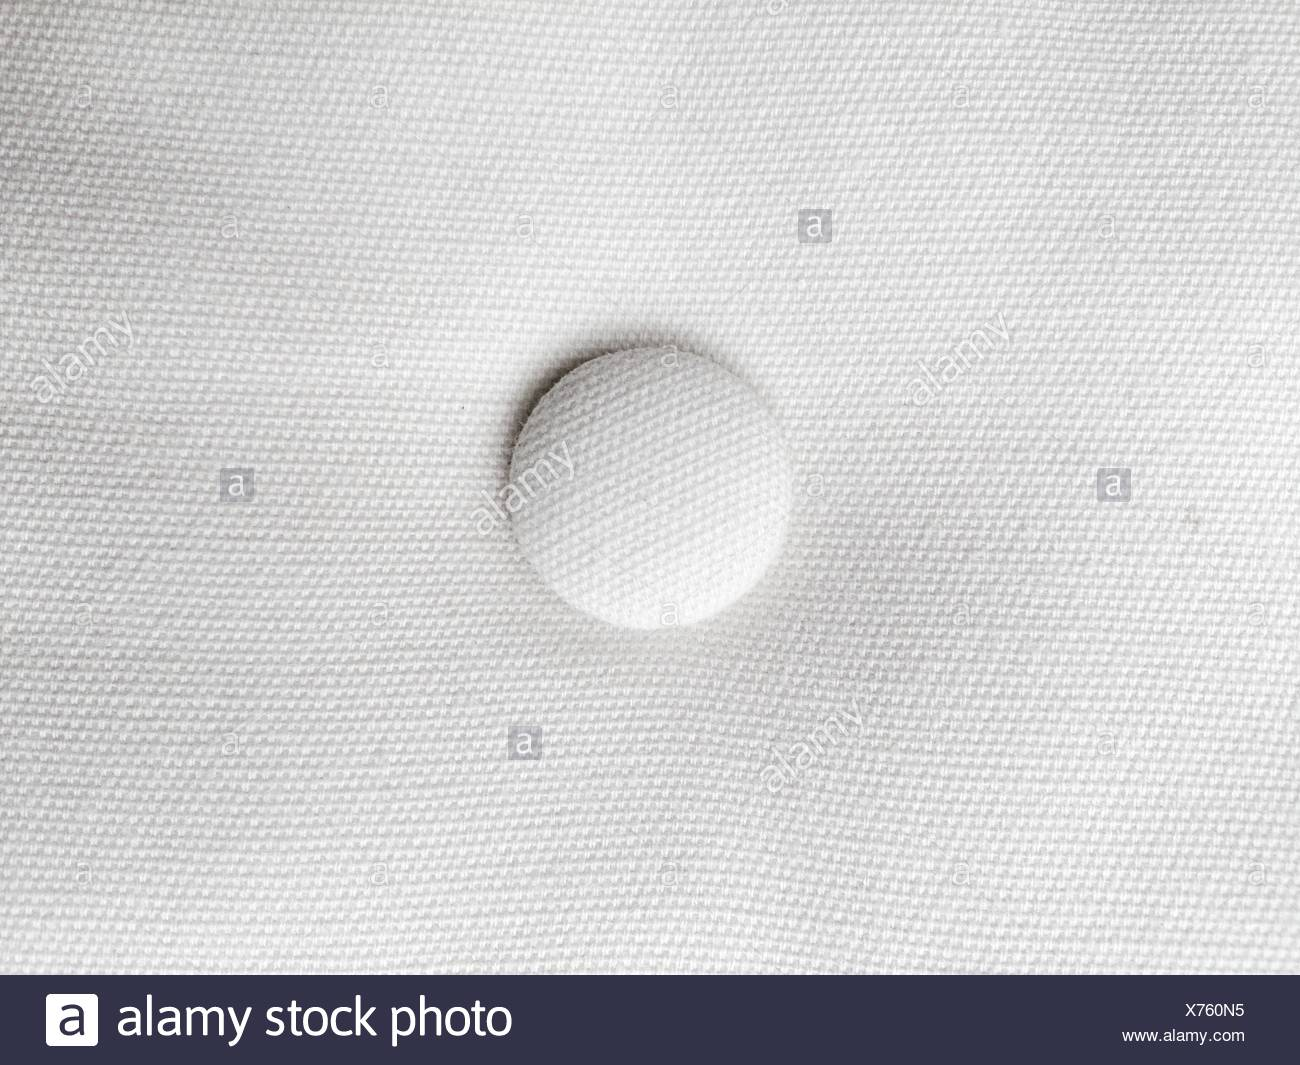 Close-Up Of Button On White Fabric - Stock Image